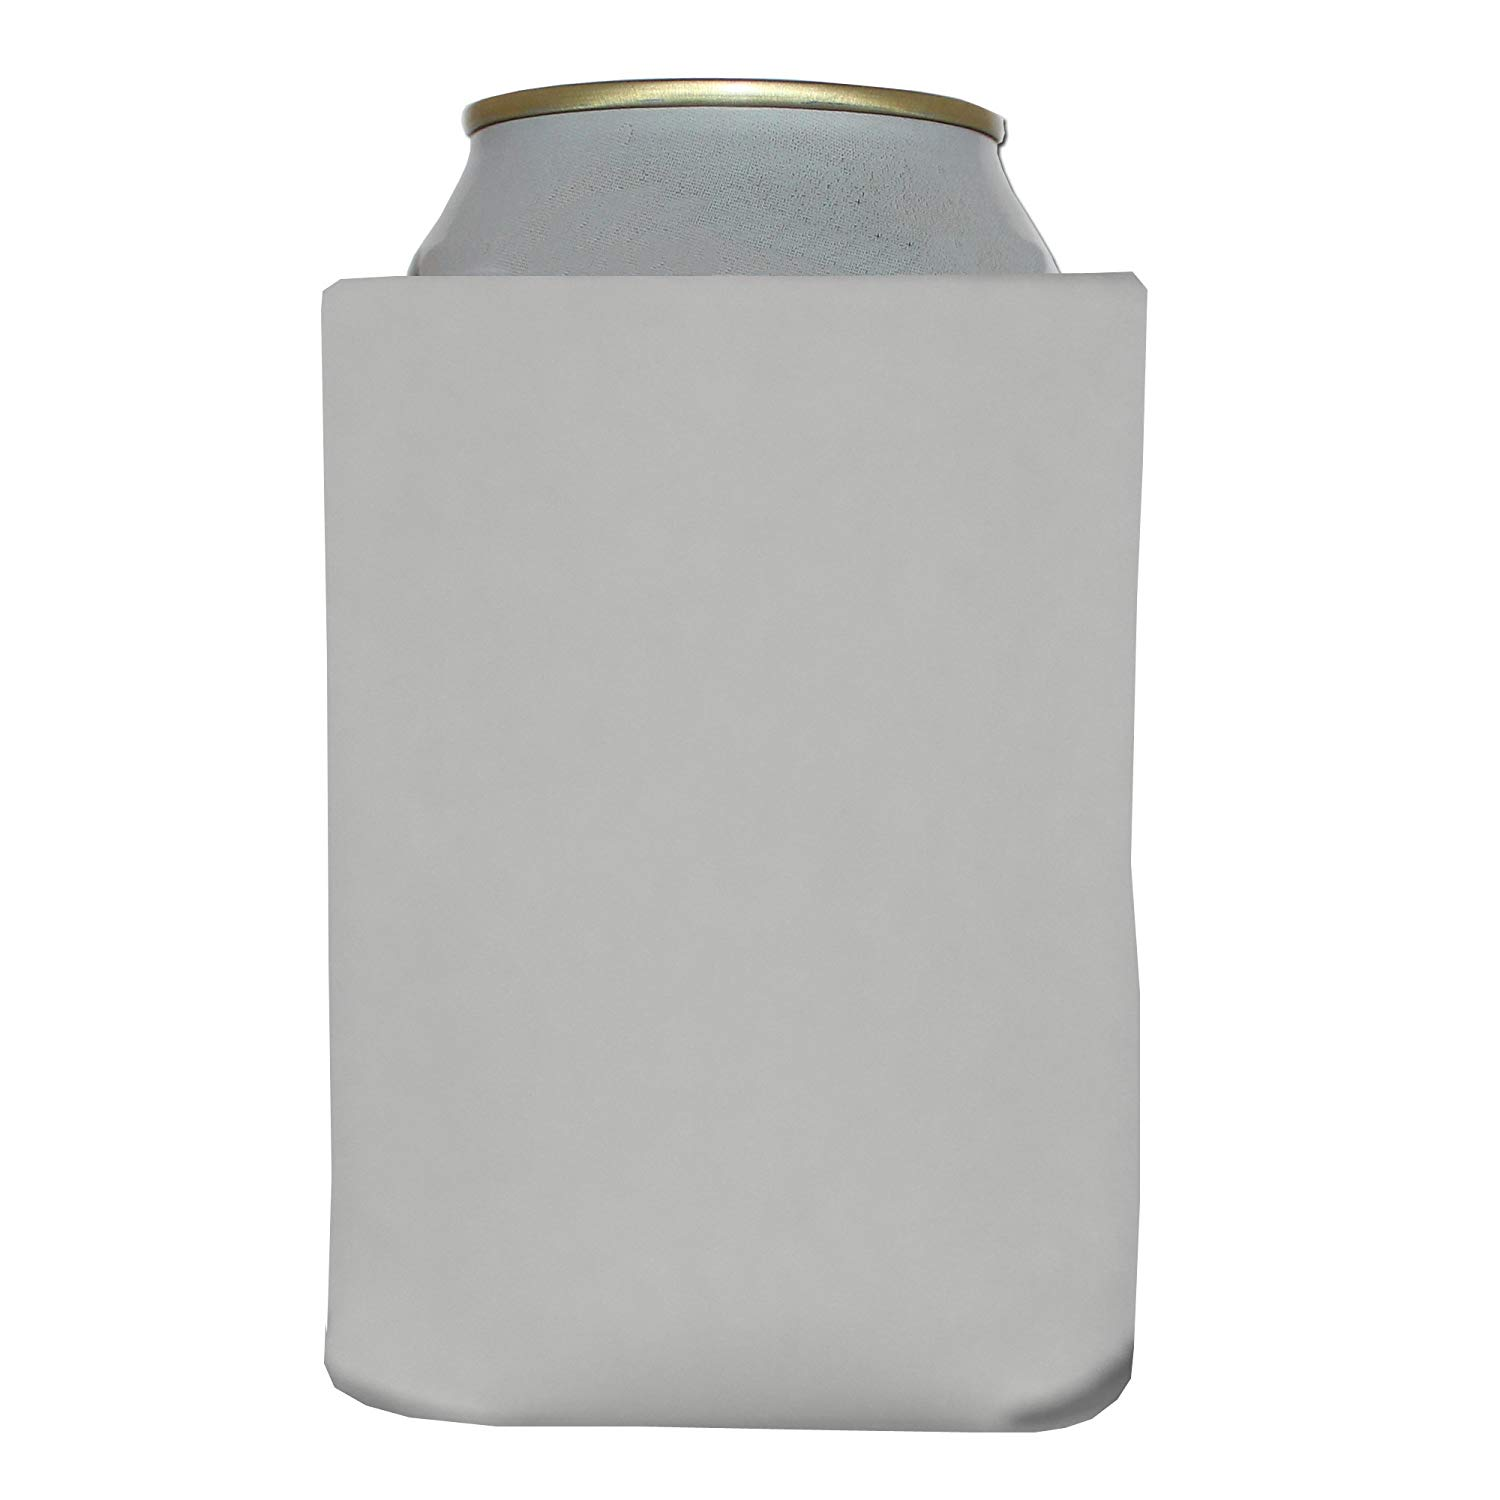 SINGLE WHITE Premium Blank Beverage Insulator Can Cooler for Soda & Beer. Blank WHITE Can Coolers, Heat Transfer Vinyl, Fabric Ink, Screen Print, Sublimation, Wedding, Party, Reunion, Birthday